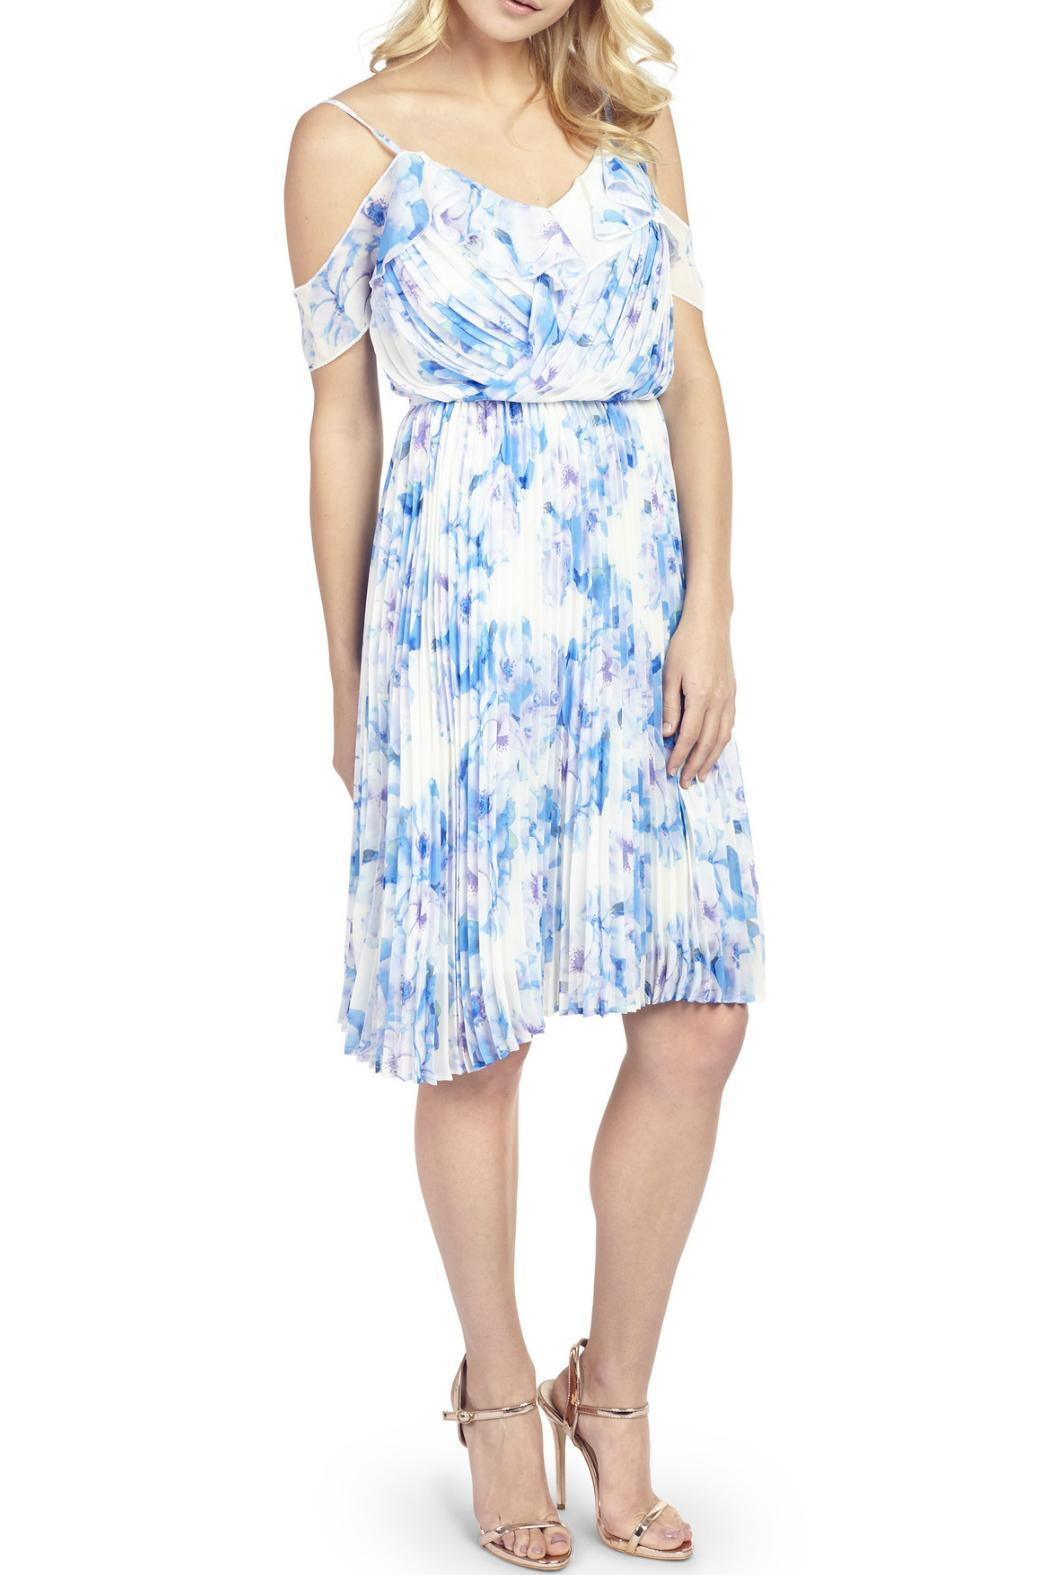 Wolf & Whistle Sasha Floral Dress - Front Cropped Image